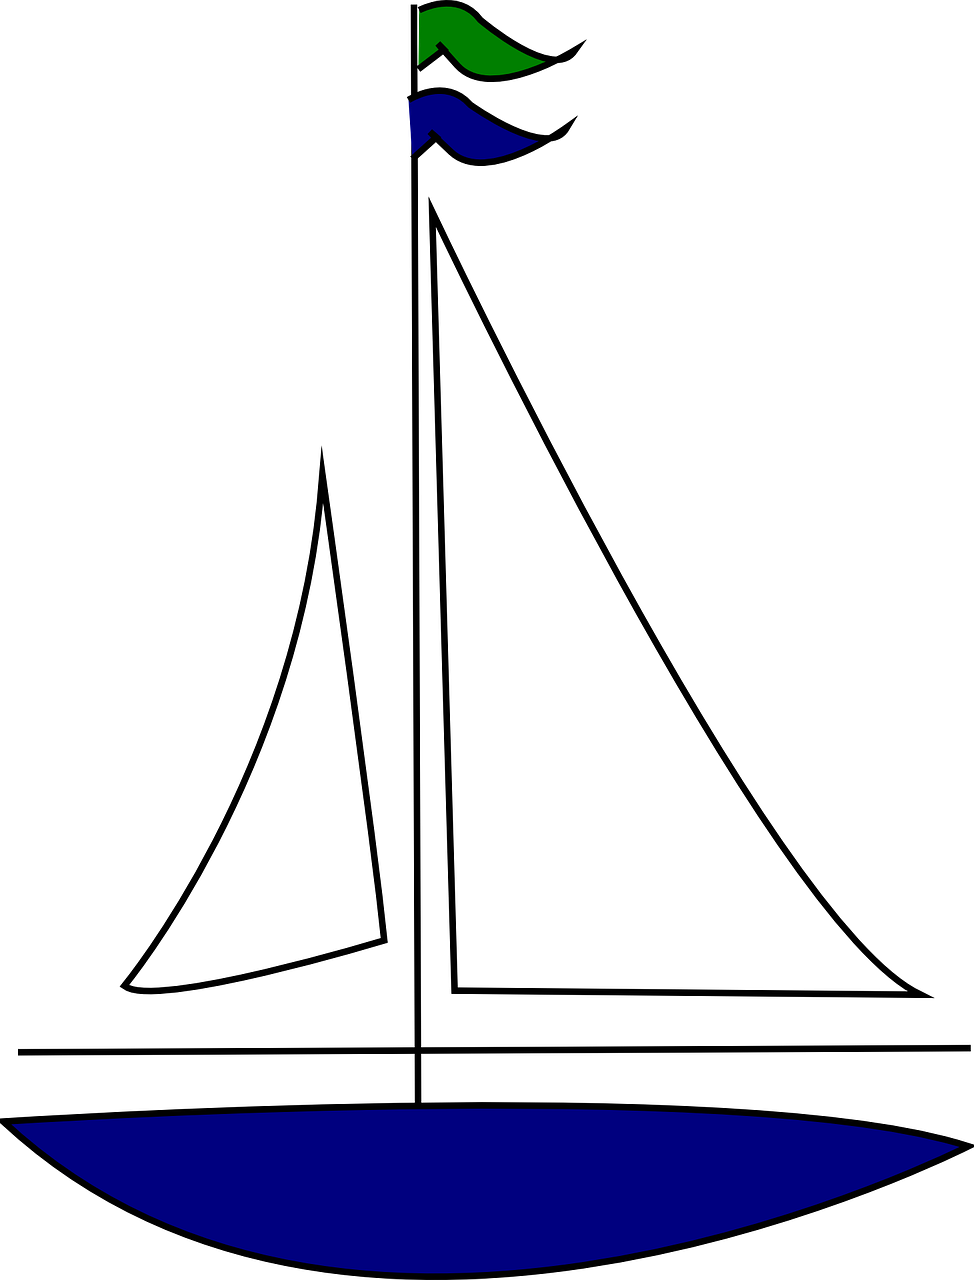 How to draw a boat. stencils 8